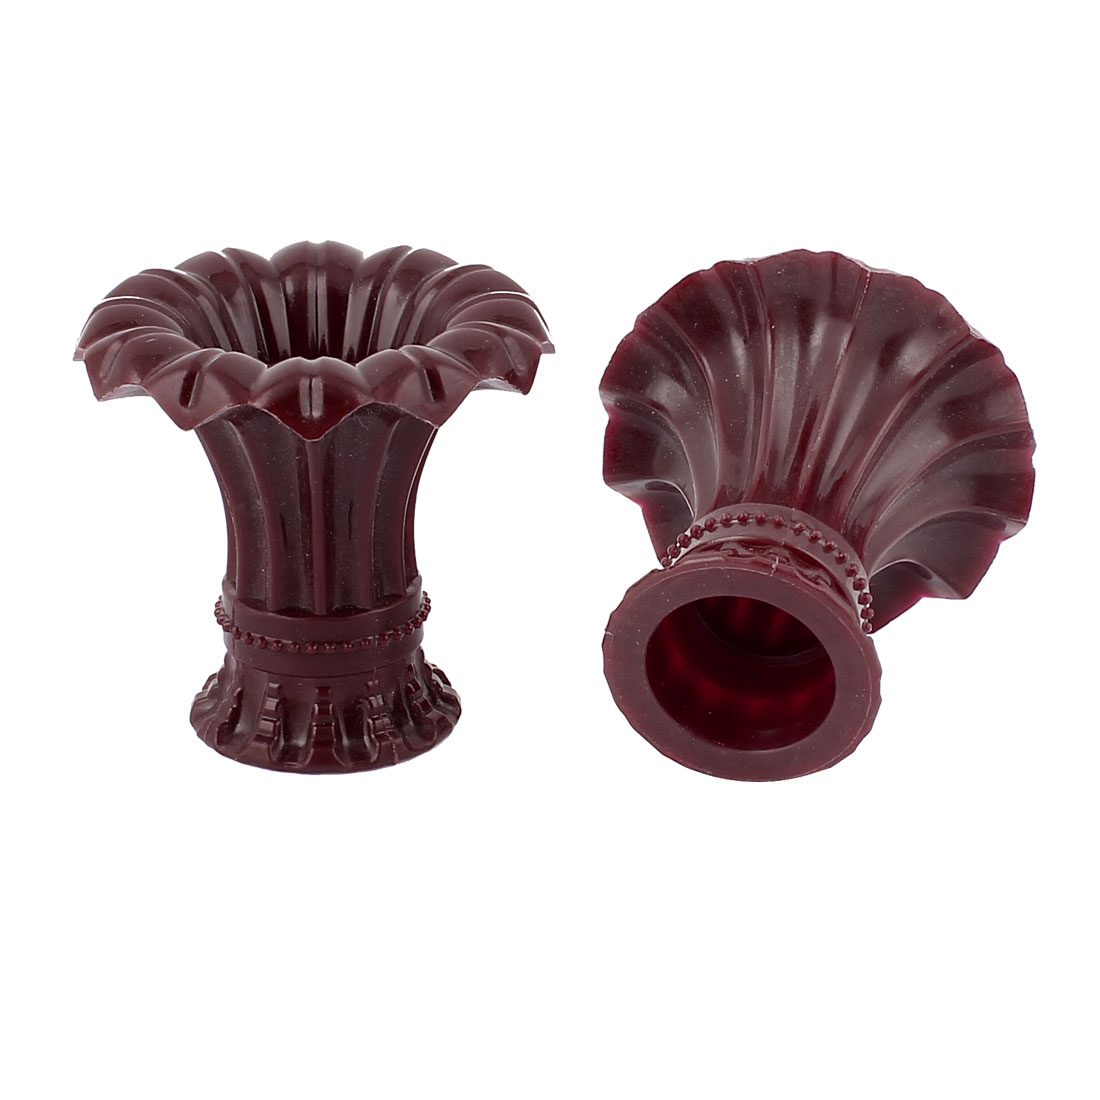 2pcs 20mm Dia Plastic Petunia Shape Drapery Curtain Rod Ends Caps Finials Burgundy